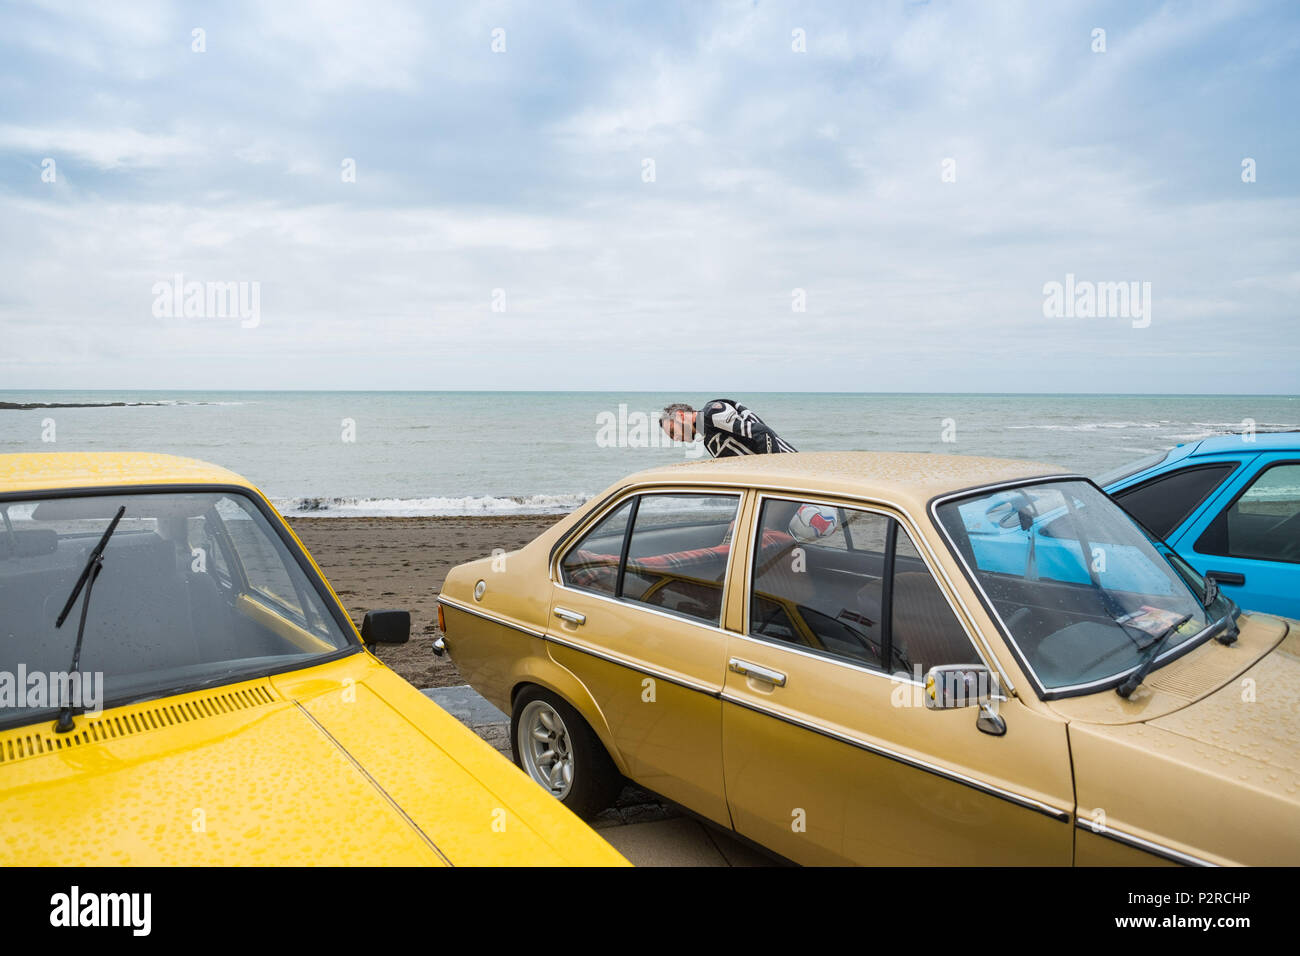 Aberystwyth Wales UK Saturday 16 June 2018  People on the promenade in Aberystwyth admiring a display of iconic  sports and classic cars, in a charity event organized by the local branch of the Rotary Club.    photo © Keith Morris / Alamy Live News - Stock Image